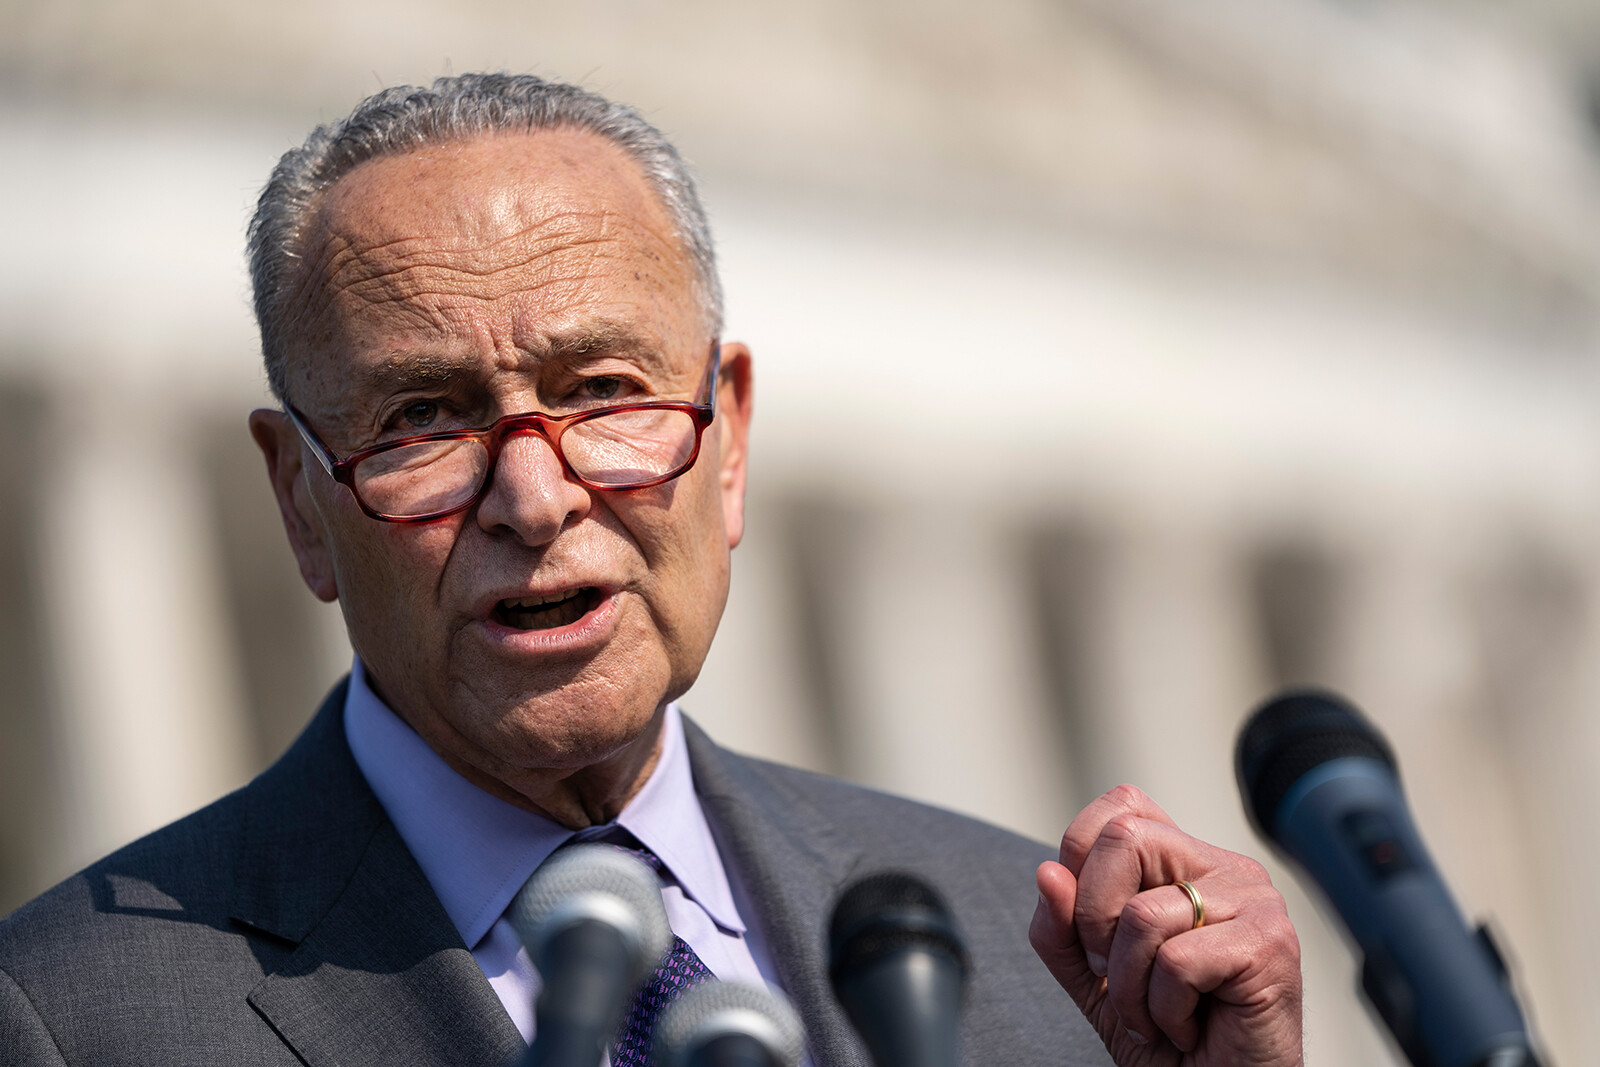 Young people to Schumer: 'Eliminate the filibuster to protect our future'